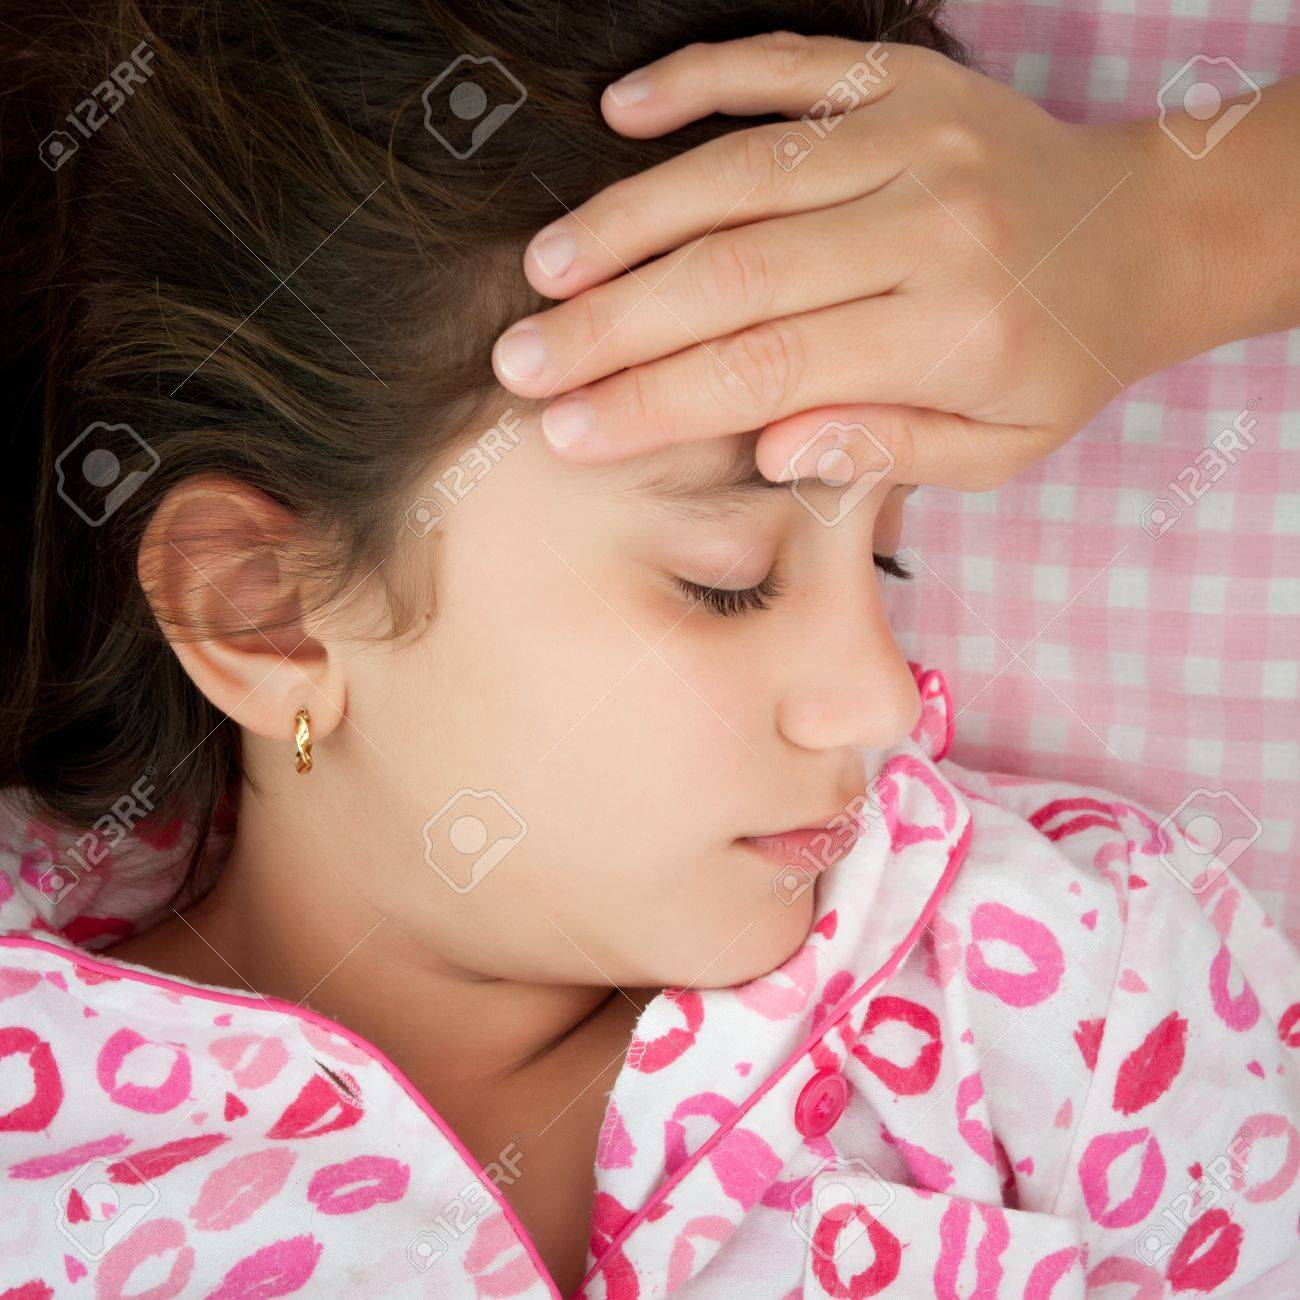 Small girl sick with fever and a woman Stock Photo - 12450849